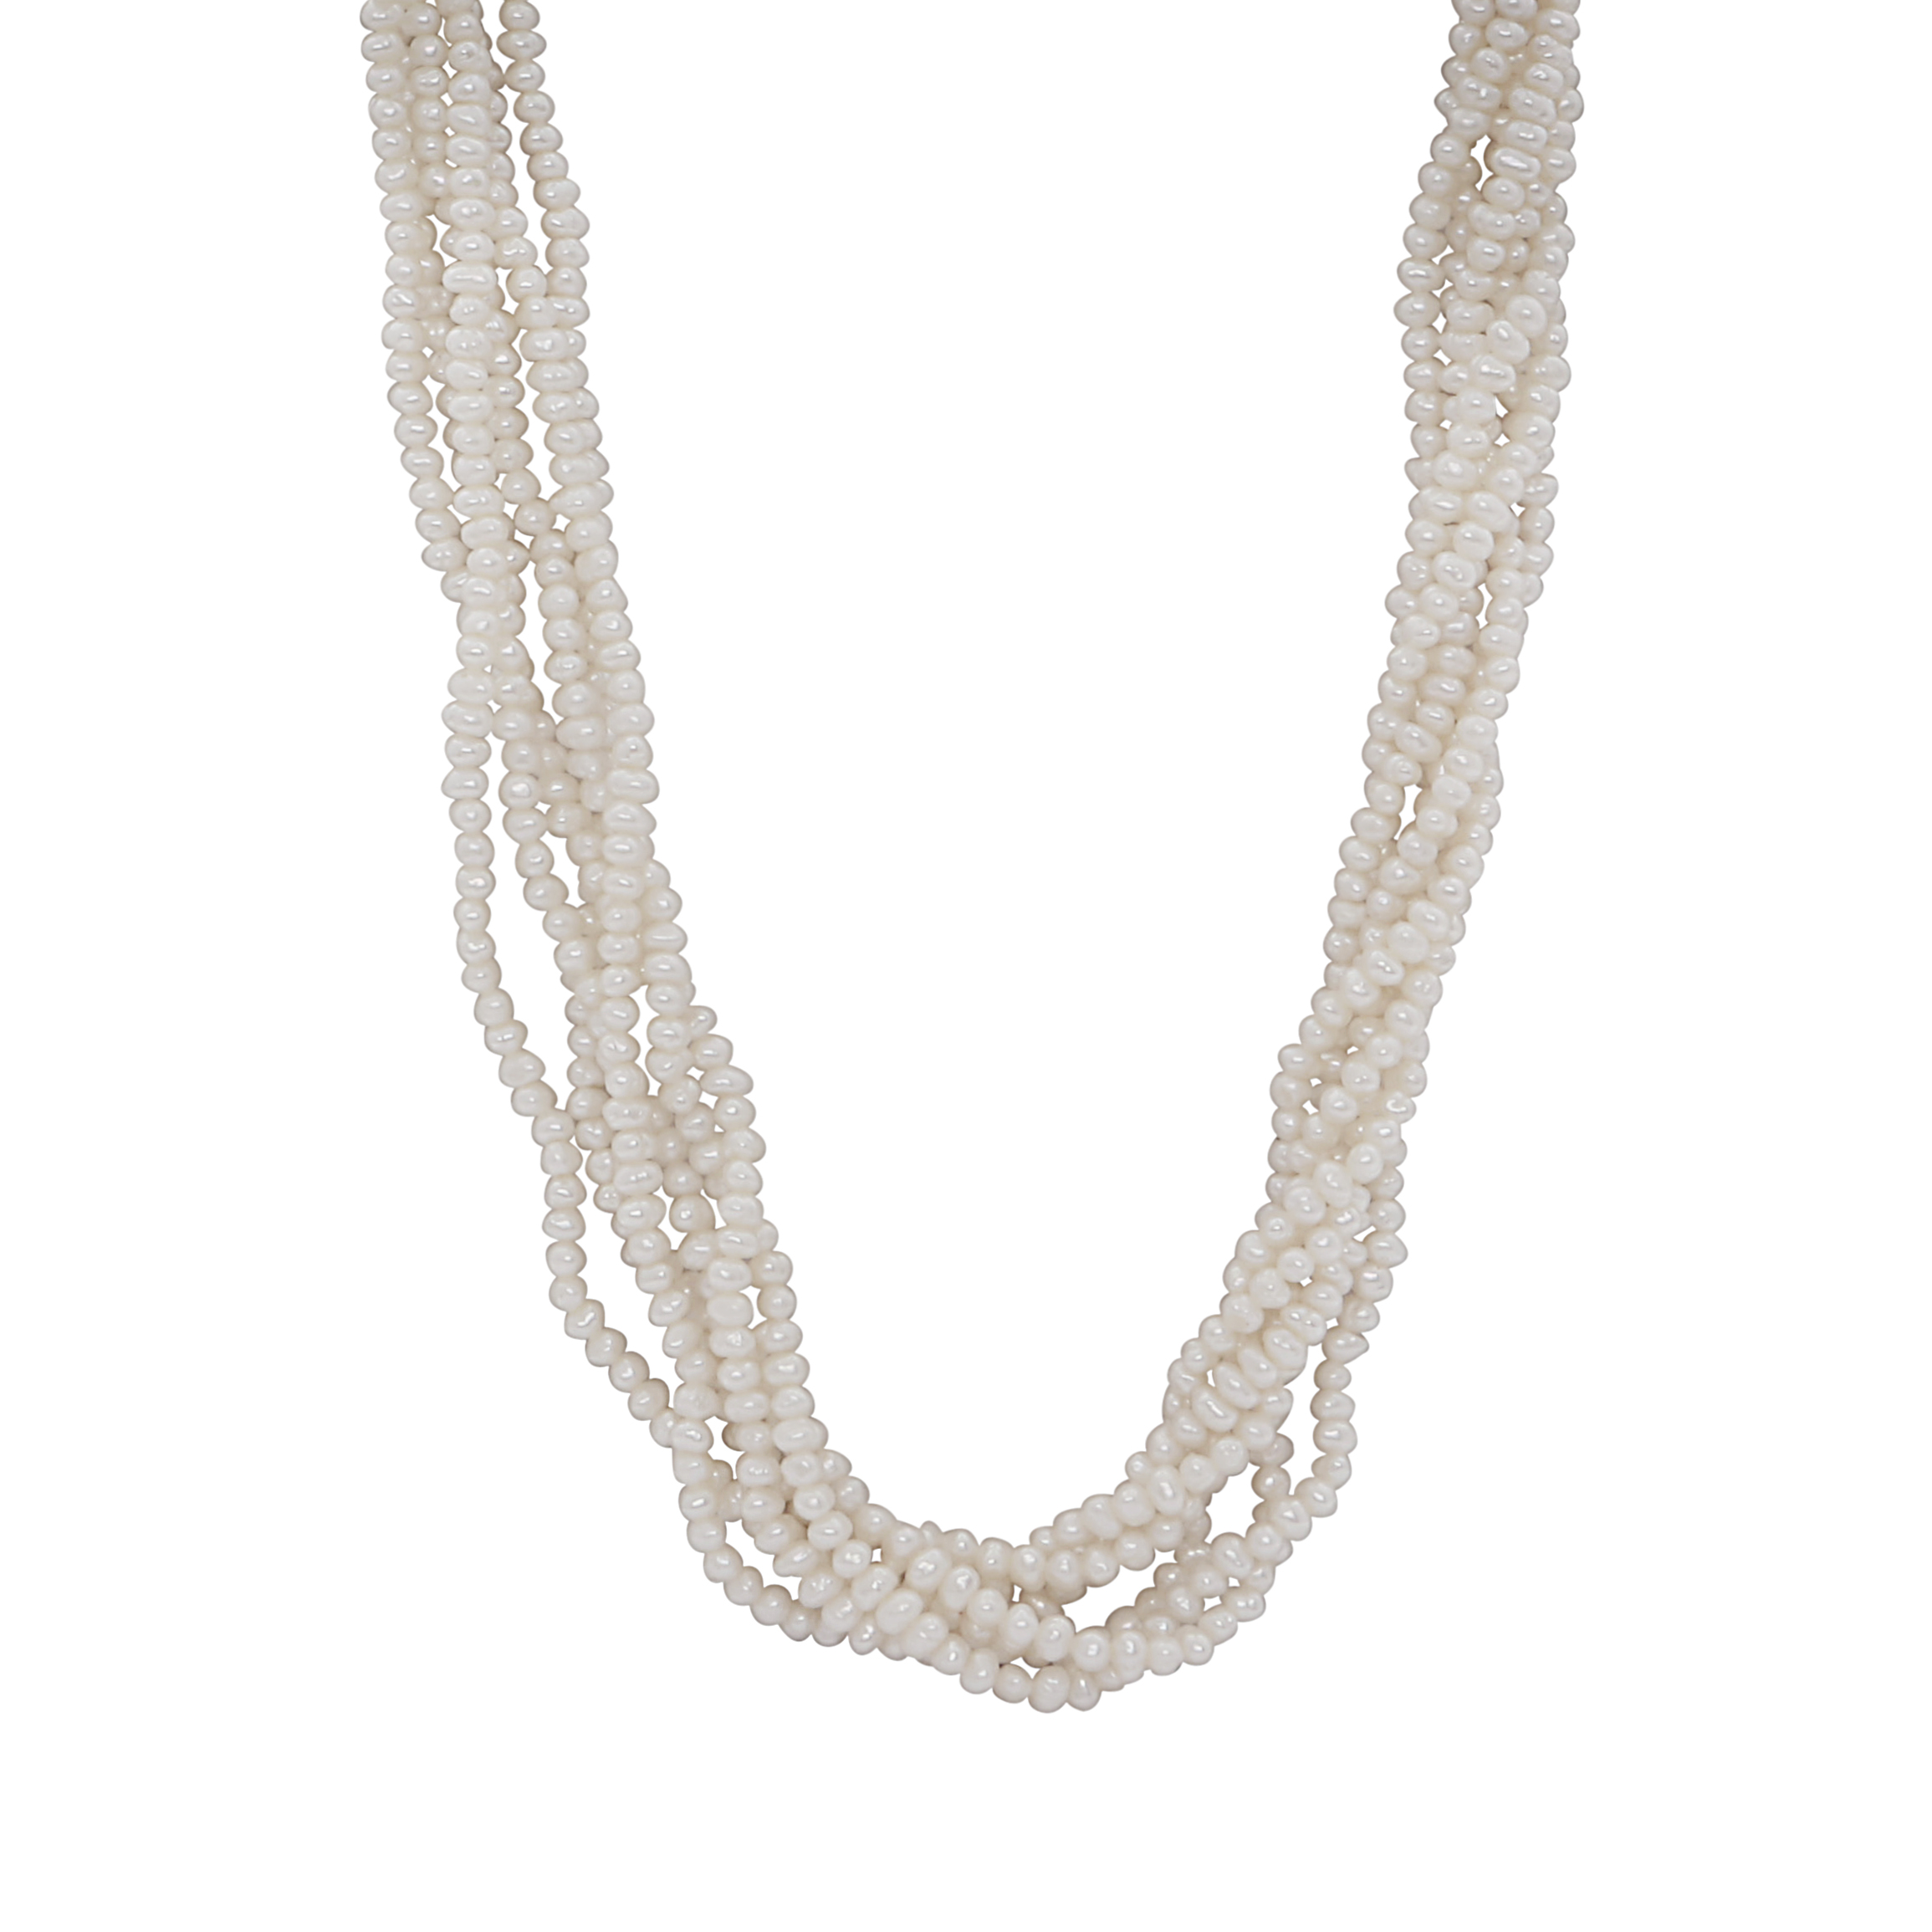 Los 181 - A cultured pearl necklace comprising six strands of pearls intertwined around one another with